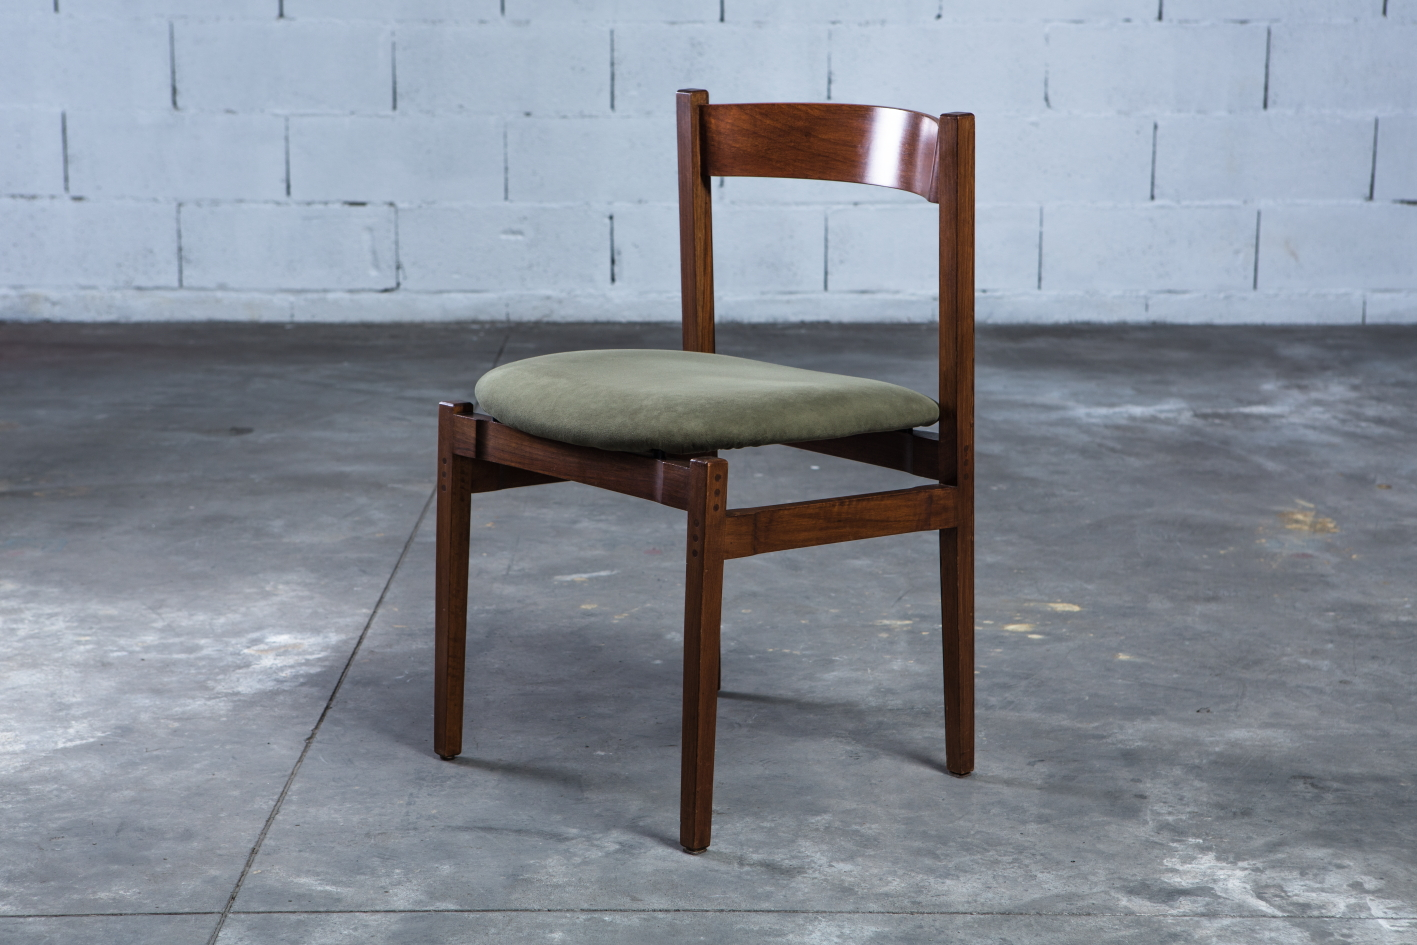 Model 104 chairs by Gianfranco Frattini for Cassina - 3/4 front view